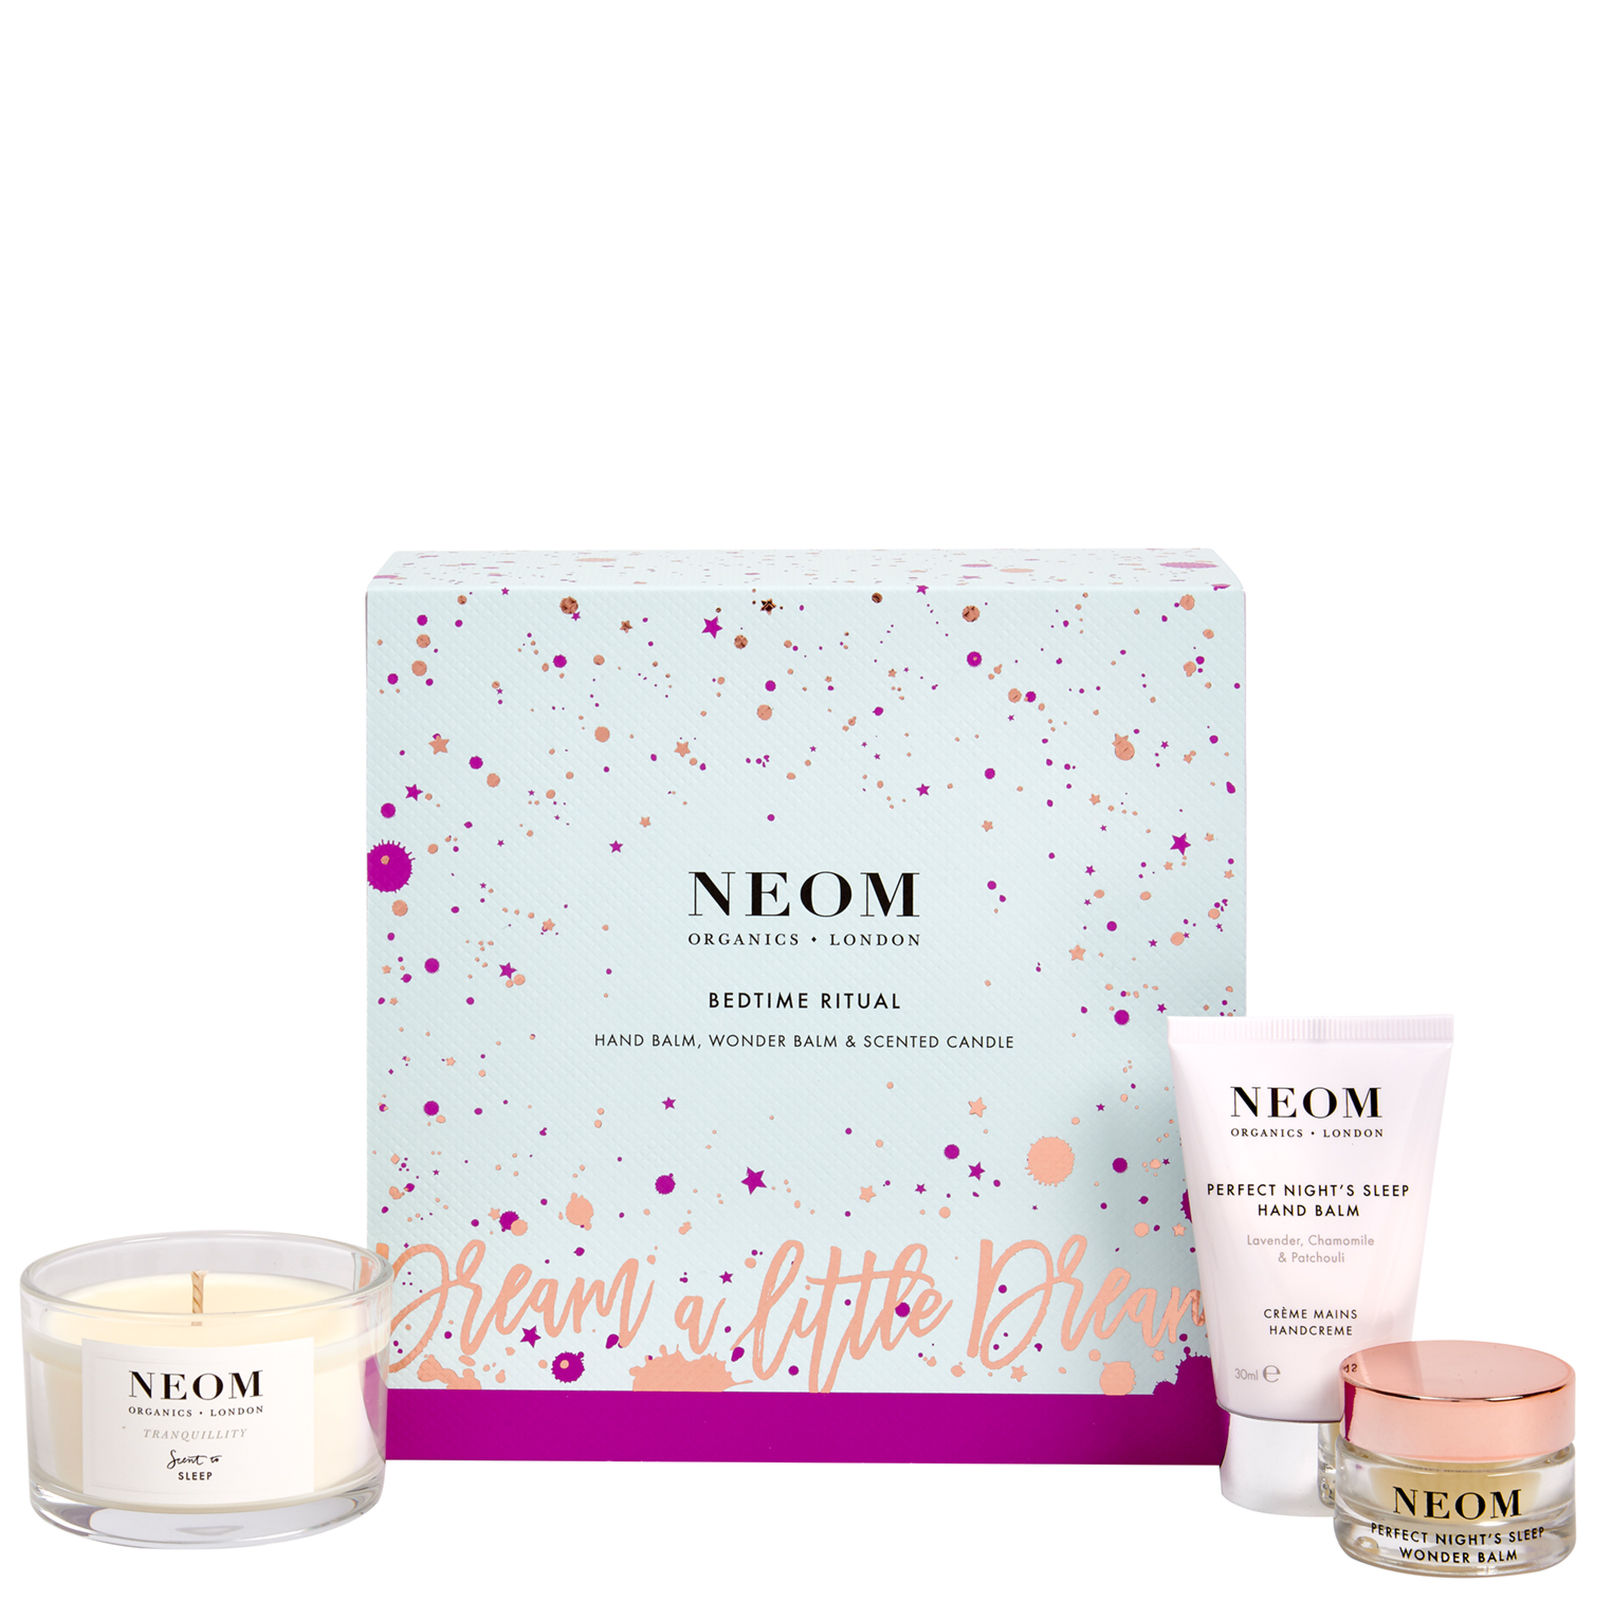 Neom Organics London Christmas 2020 Bedtime Ritual Gift Set